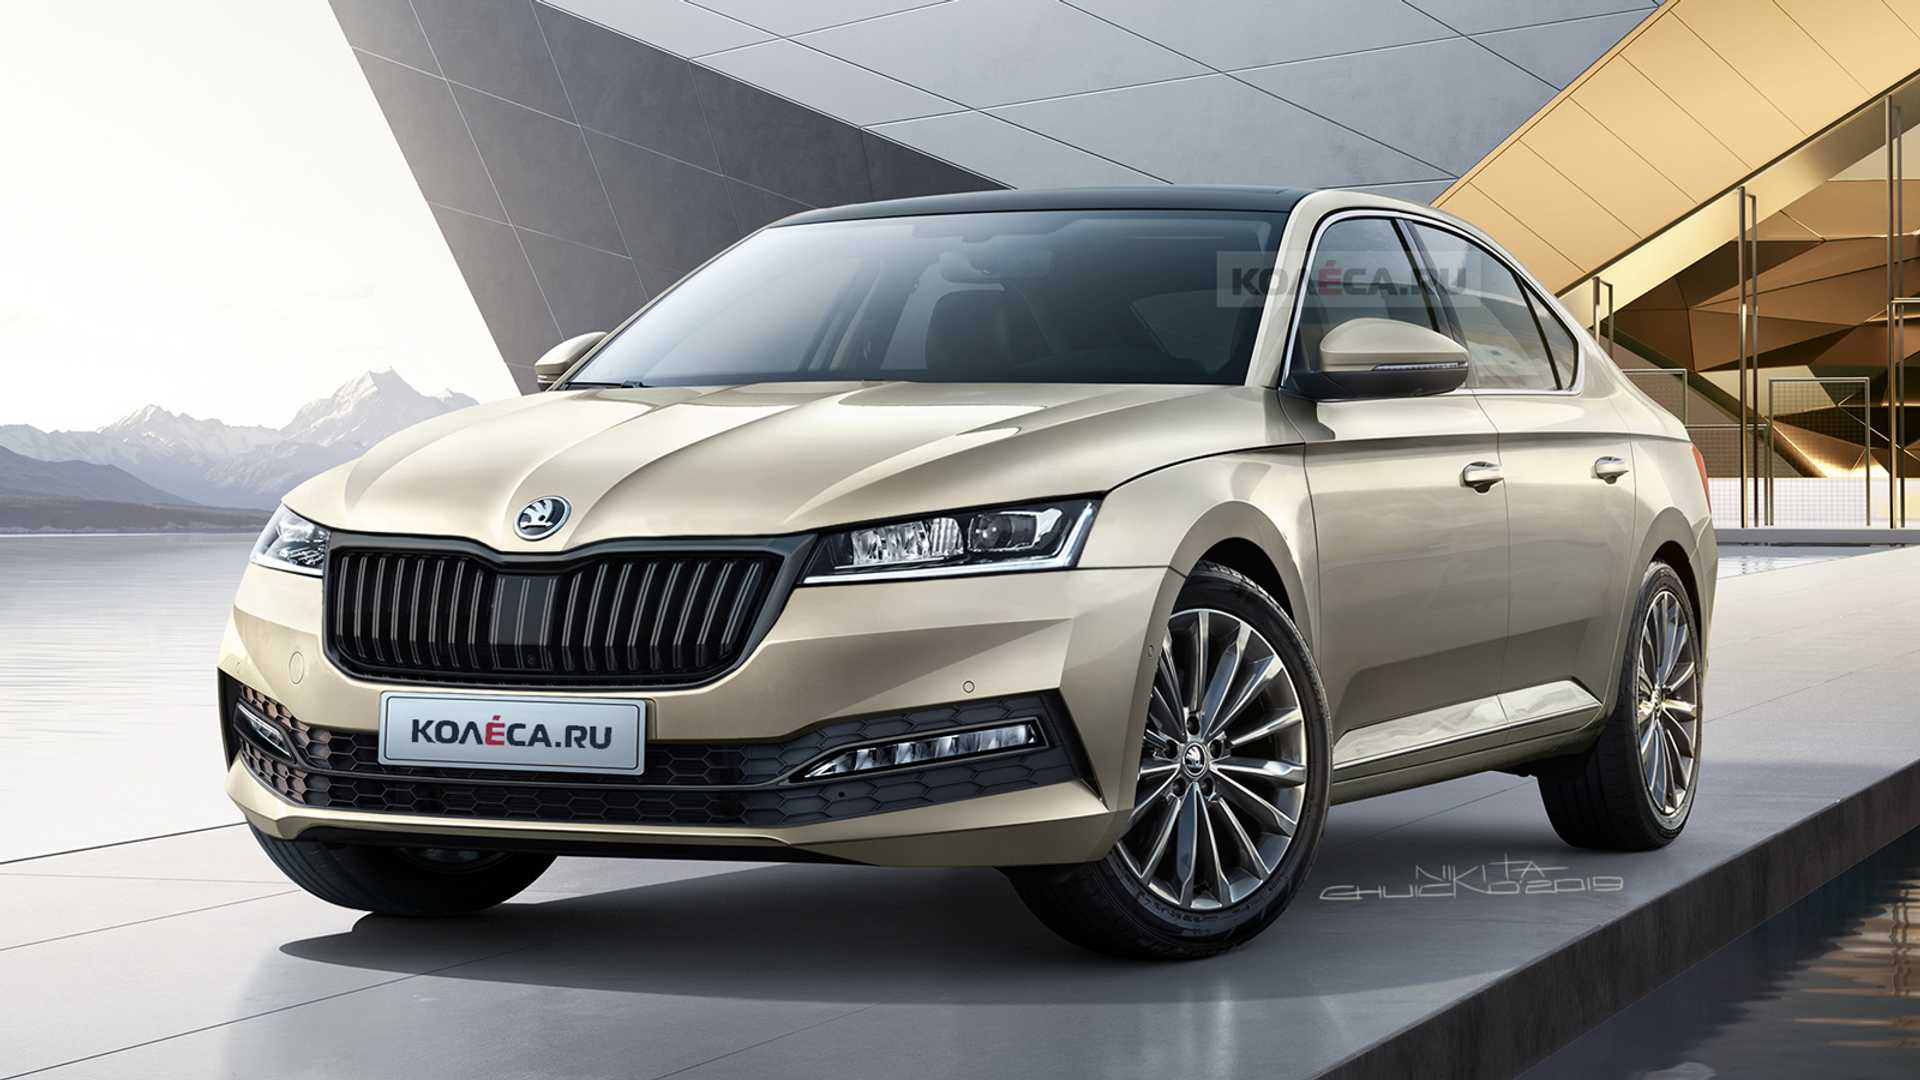 20 The Best 2020 The Spy Shots Skoda Superb Review And Release Date